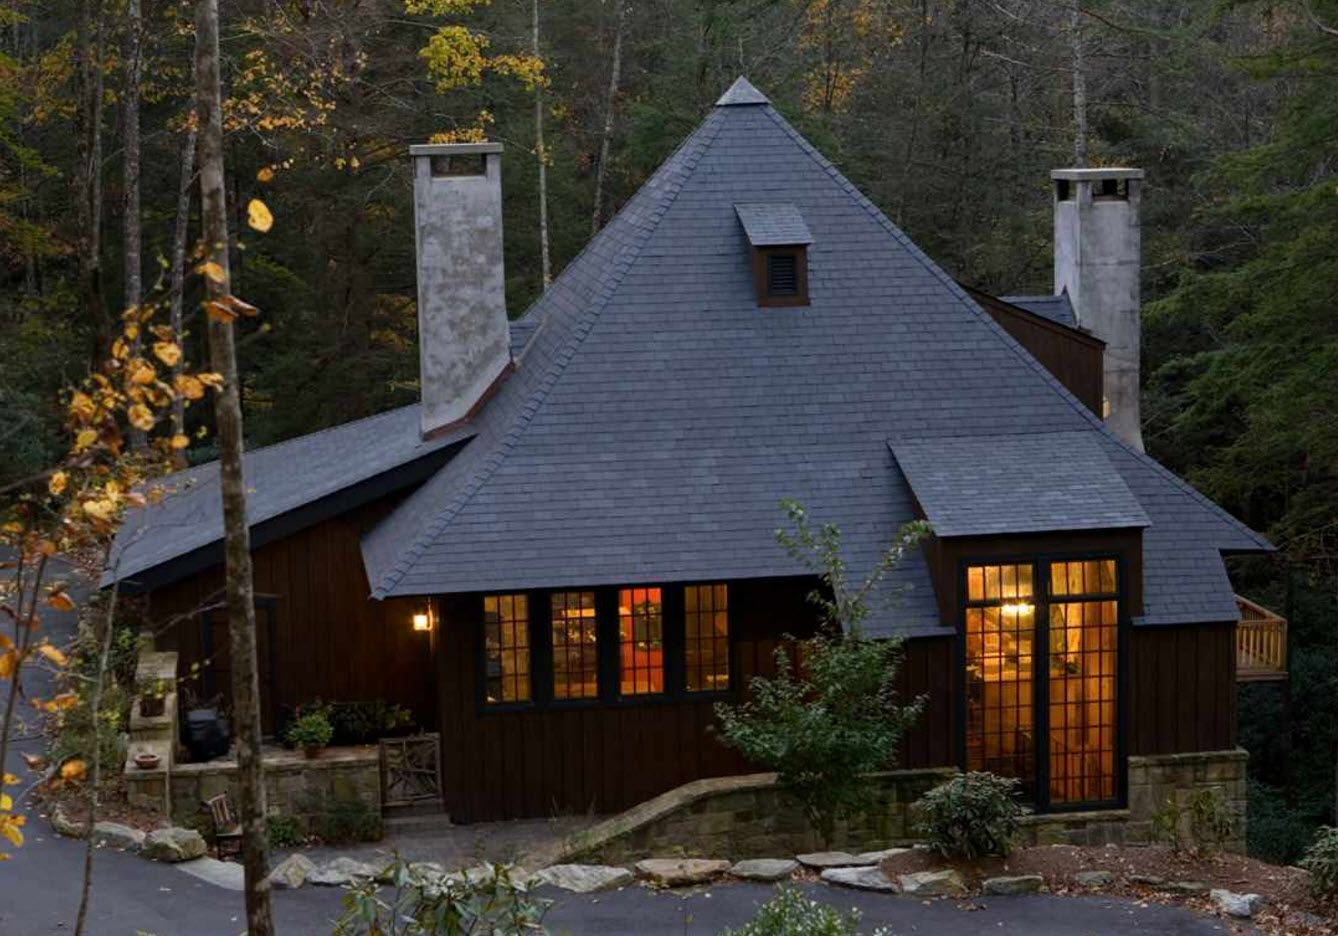 100+ Private House Roofs Beautiful Design Ideas. Hipped spectacular dark top of ноу forest side house